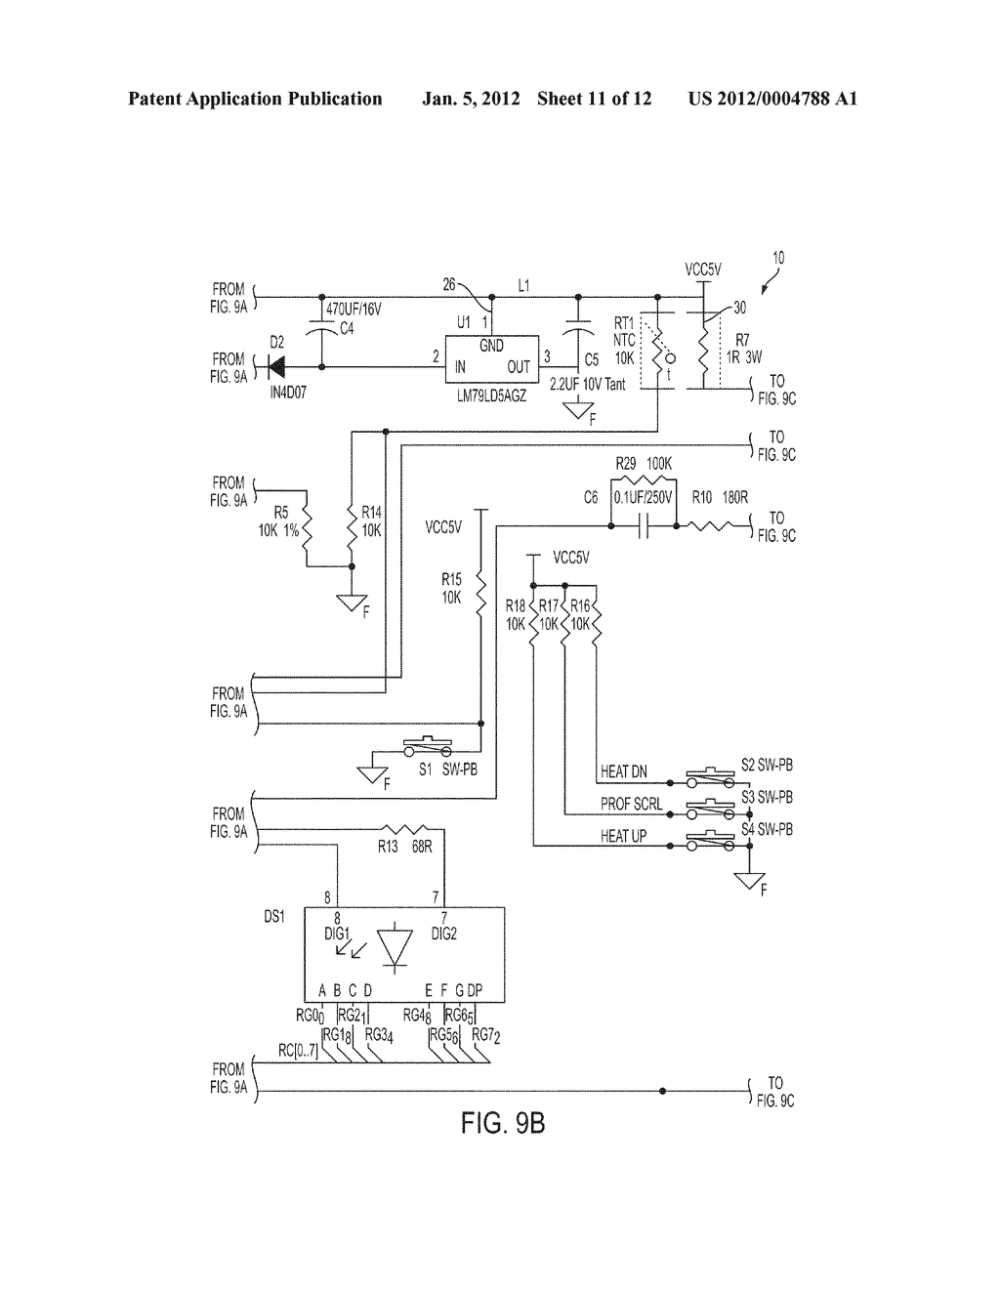 medium resolution of heating blanket with control circuit and safety wire diagram electric scooter controller wiring diagram heating blanket